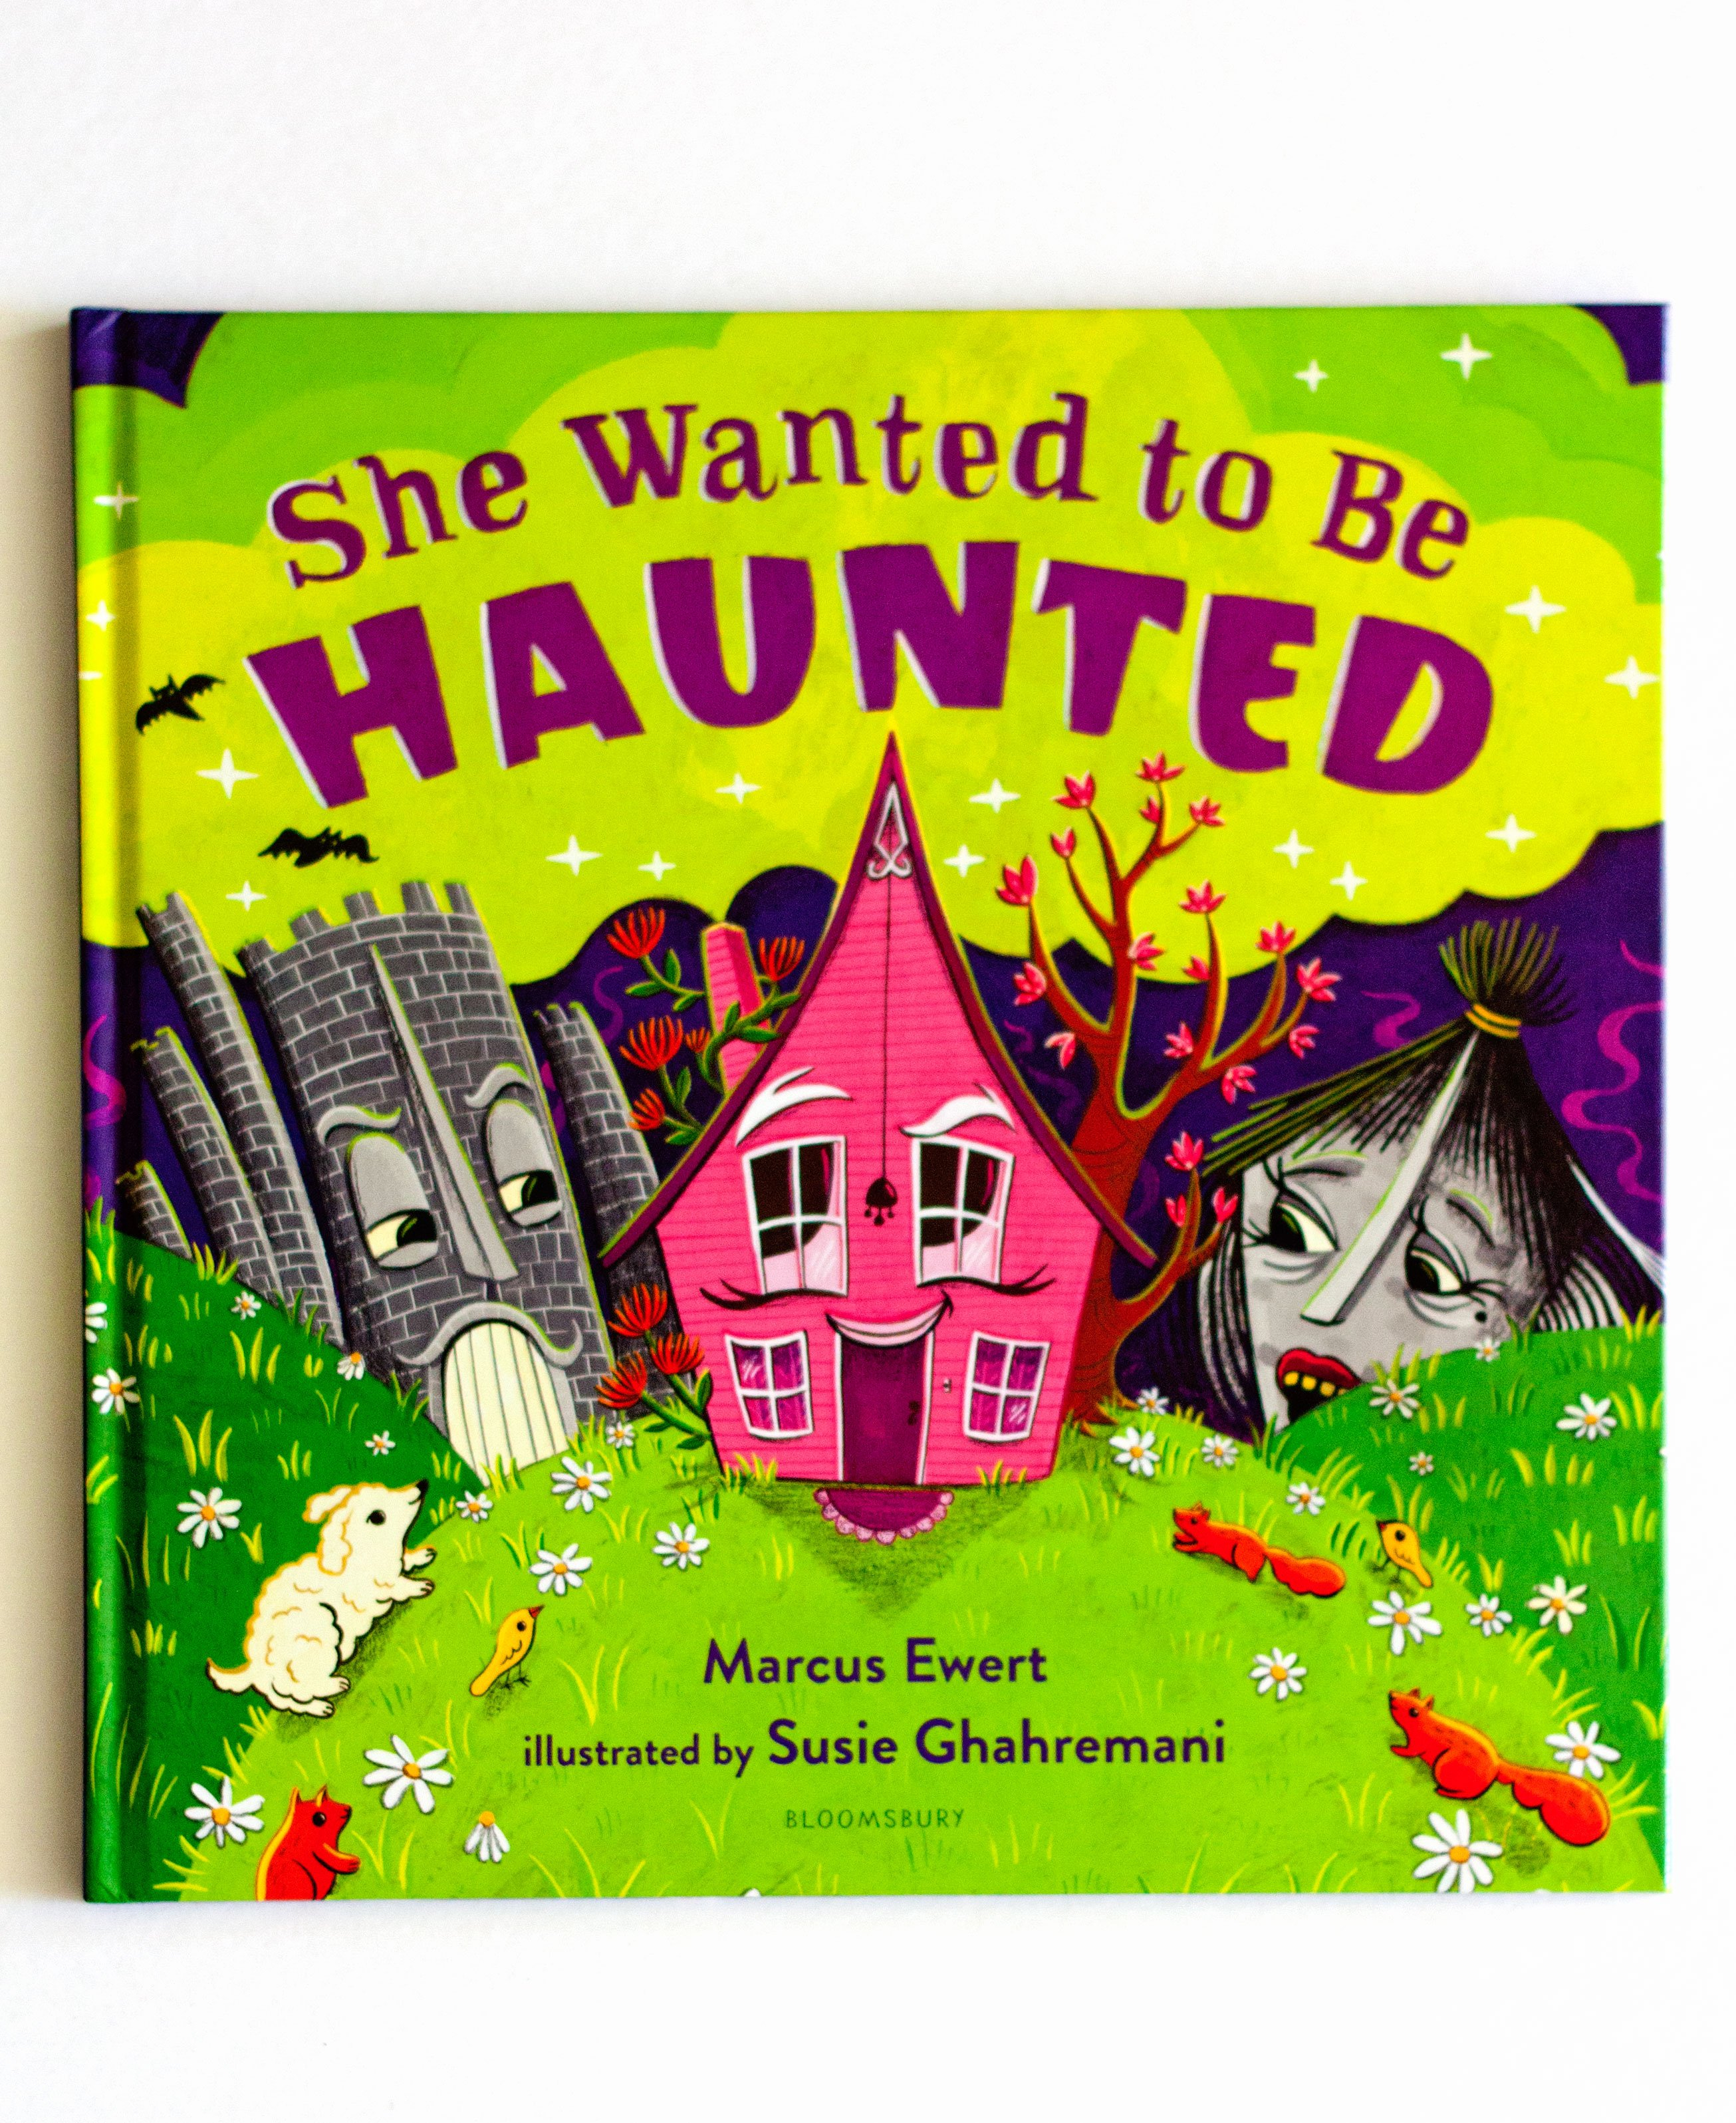 Image of She Wanted to Be Haunted – Self acceptance picture book